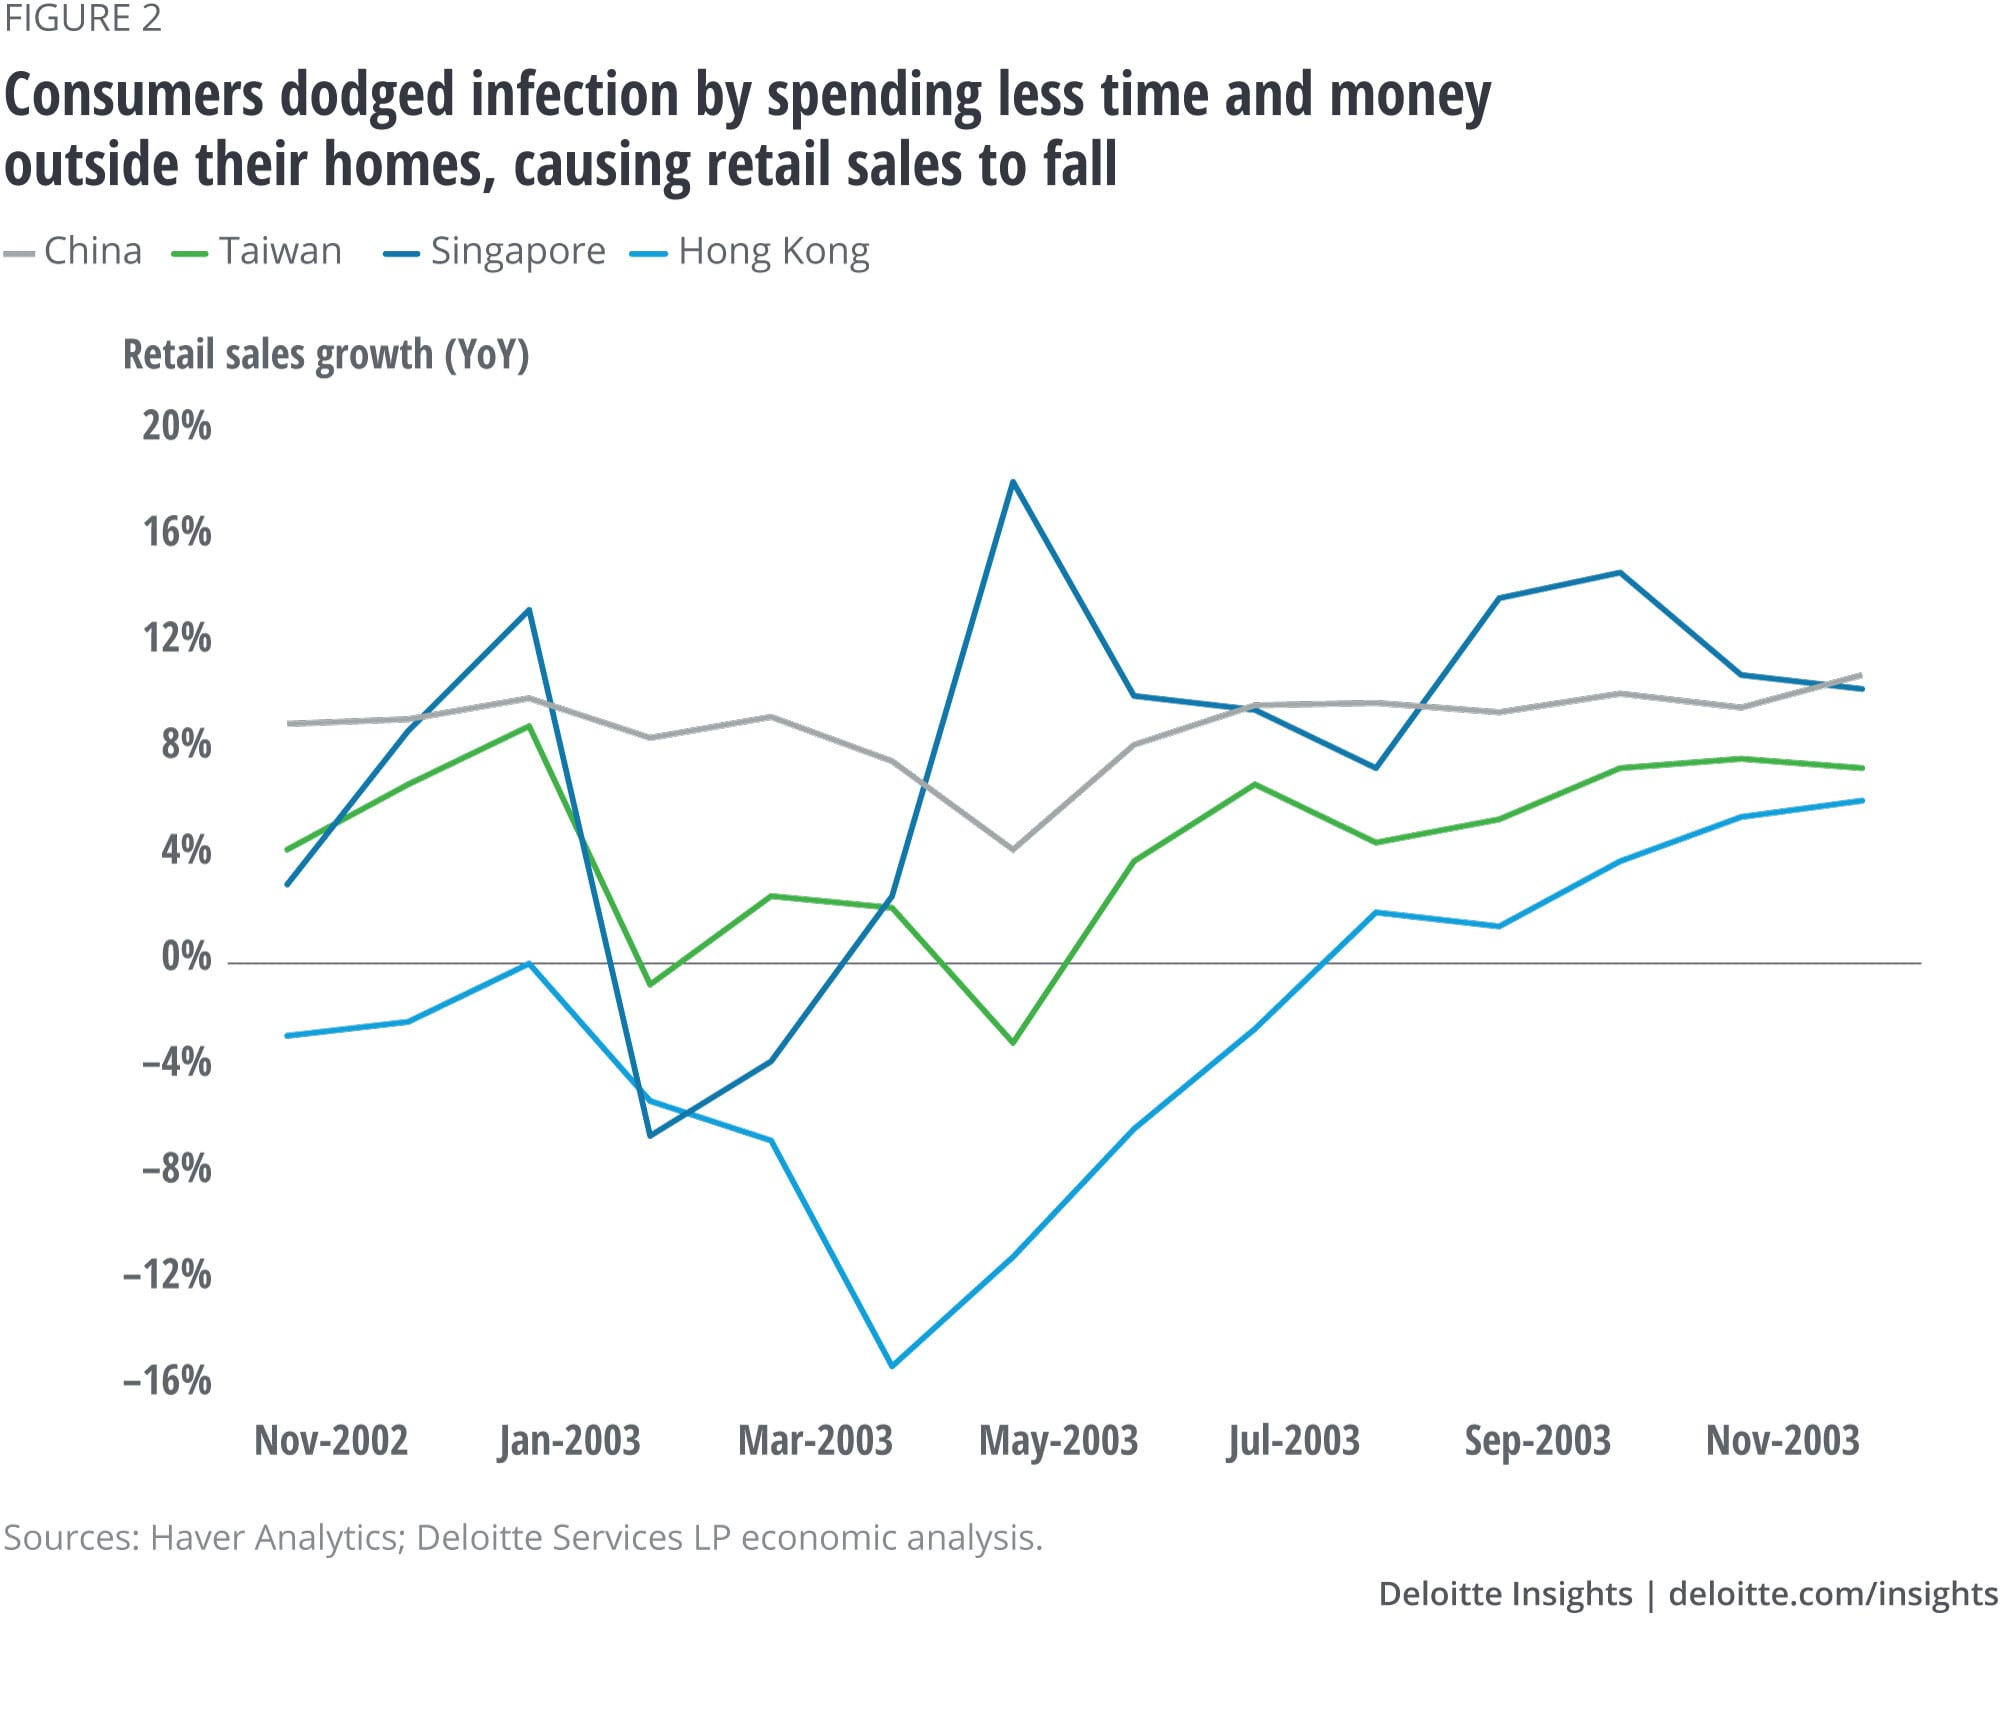 Consumers dodged infection by spending less time and money outside their homes, causing retail sales to fall